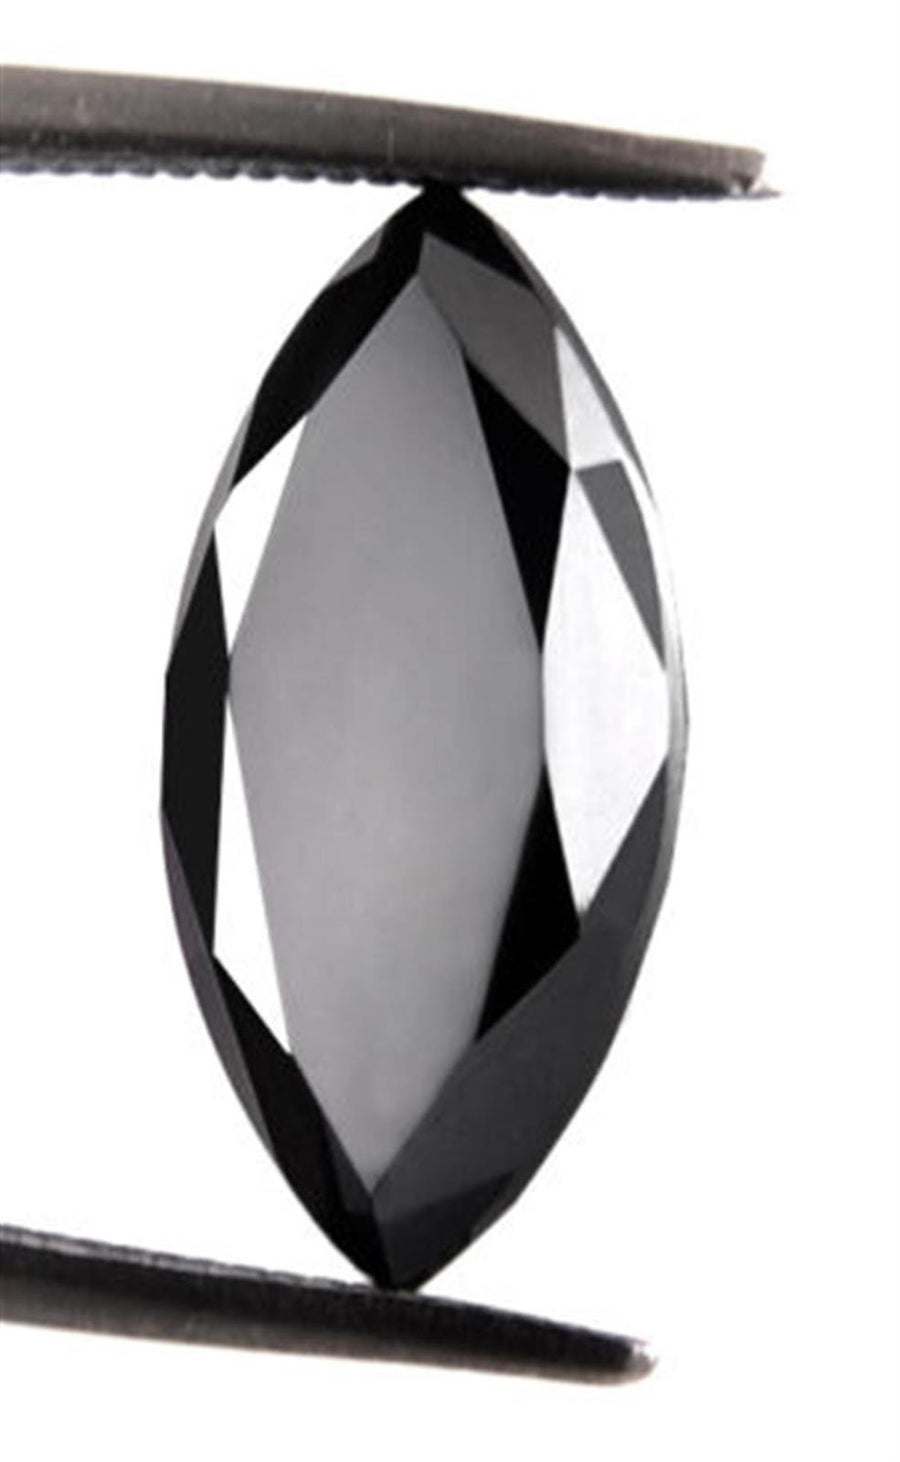 Black Diamond Solitaire 4.50 Cts Marquise Cut. Earth mined.Certified